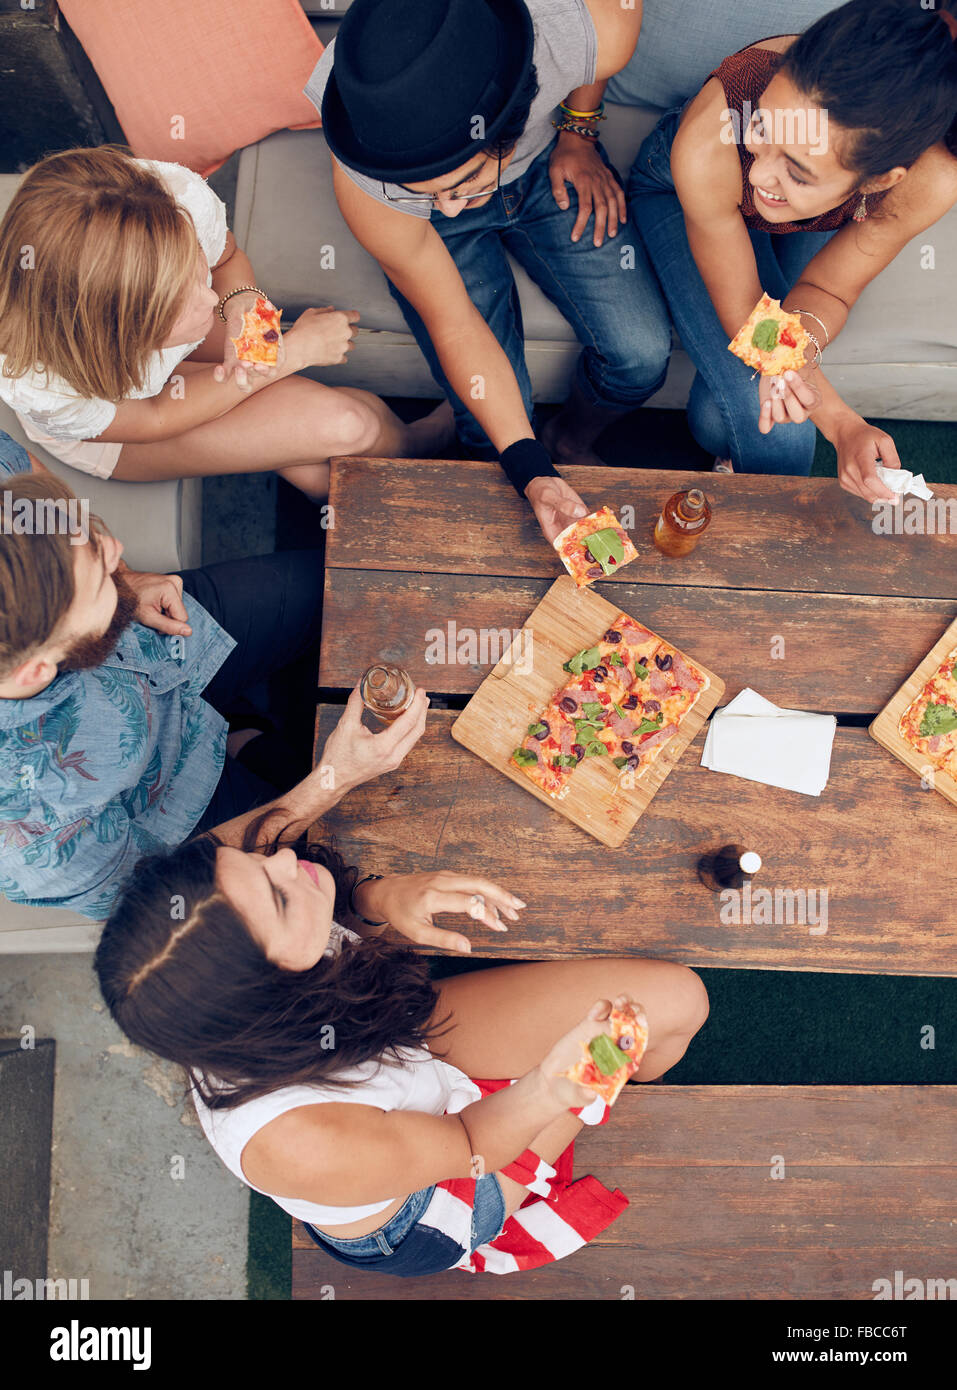 Top view of group of young people having drinks and pizza at party. Multiracial friends hanging out together. Stock Photo